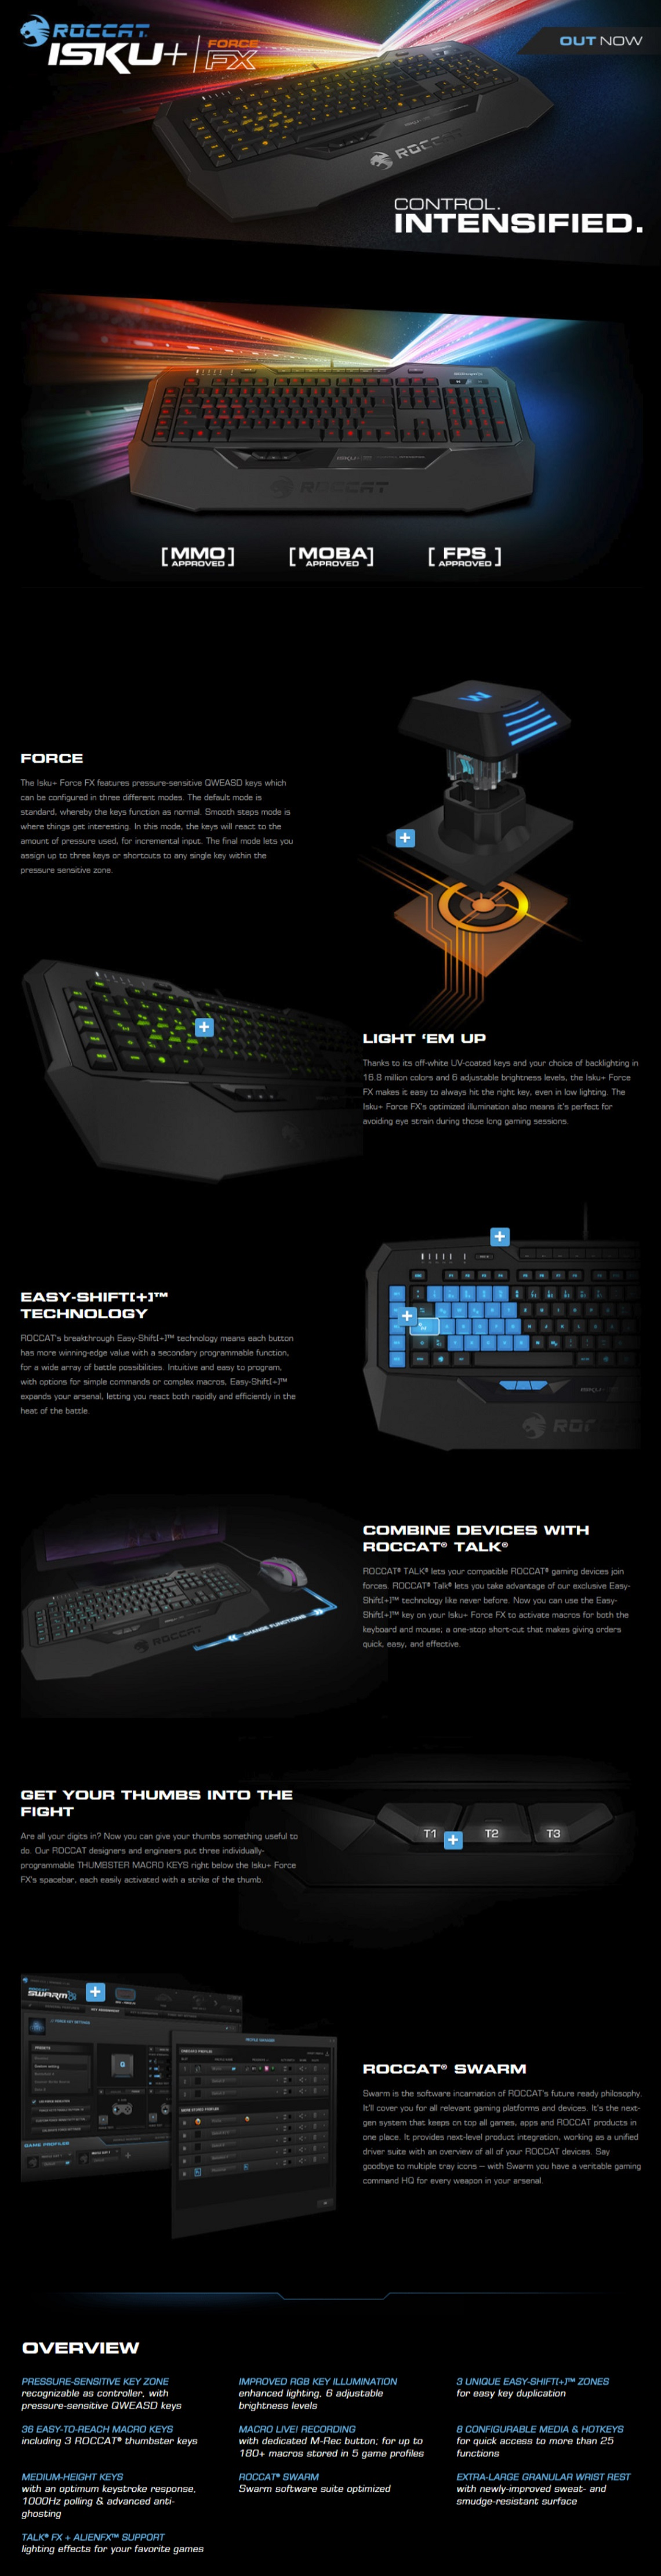 Roccat Isku Force FX RGB Gaming Keyboard with Pressure-Sensitive Key Zone